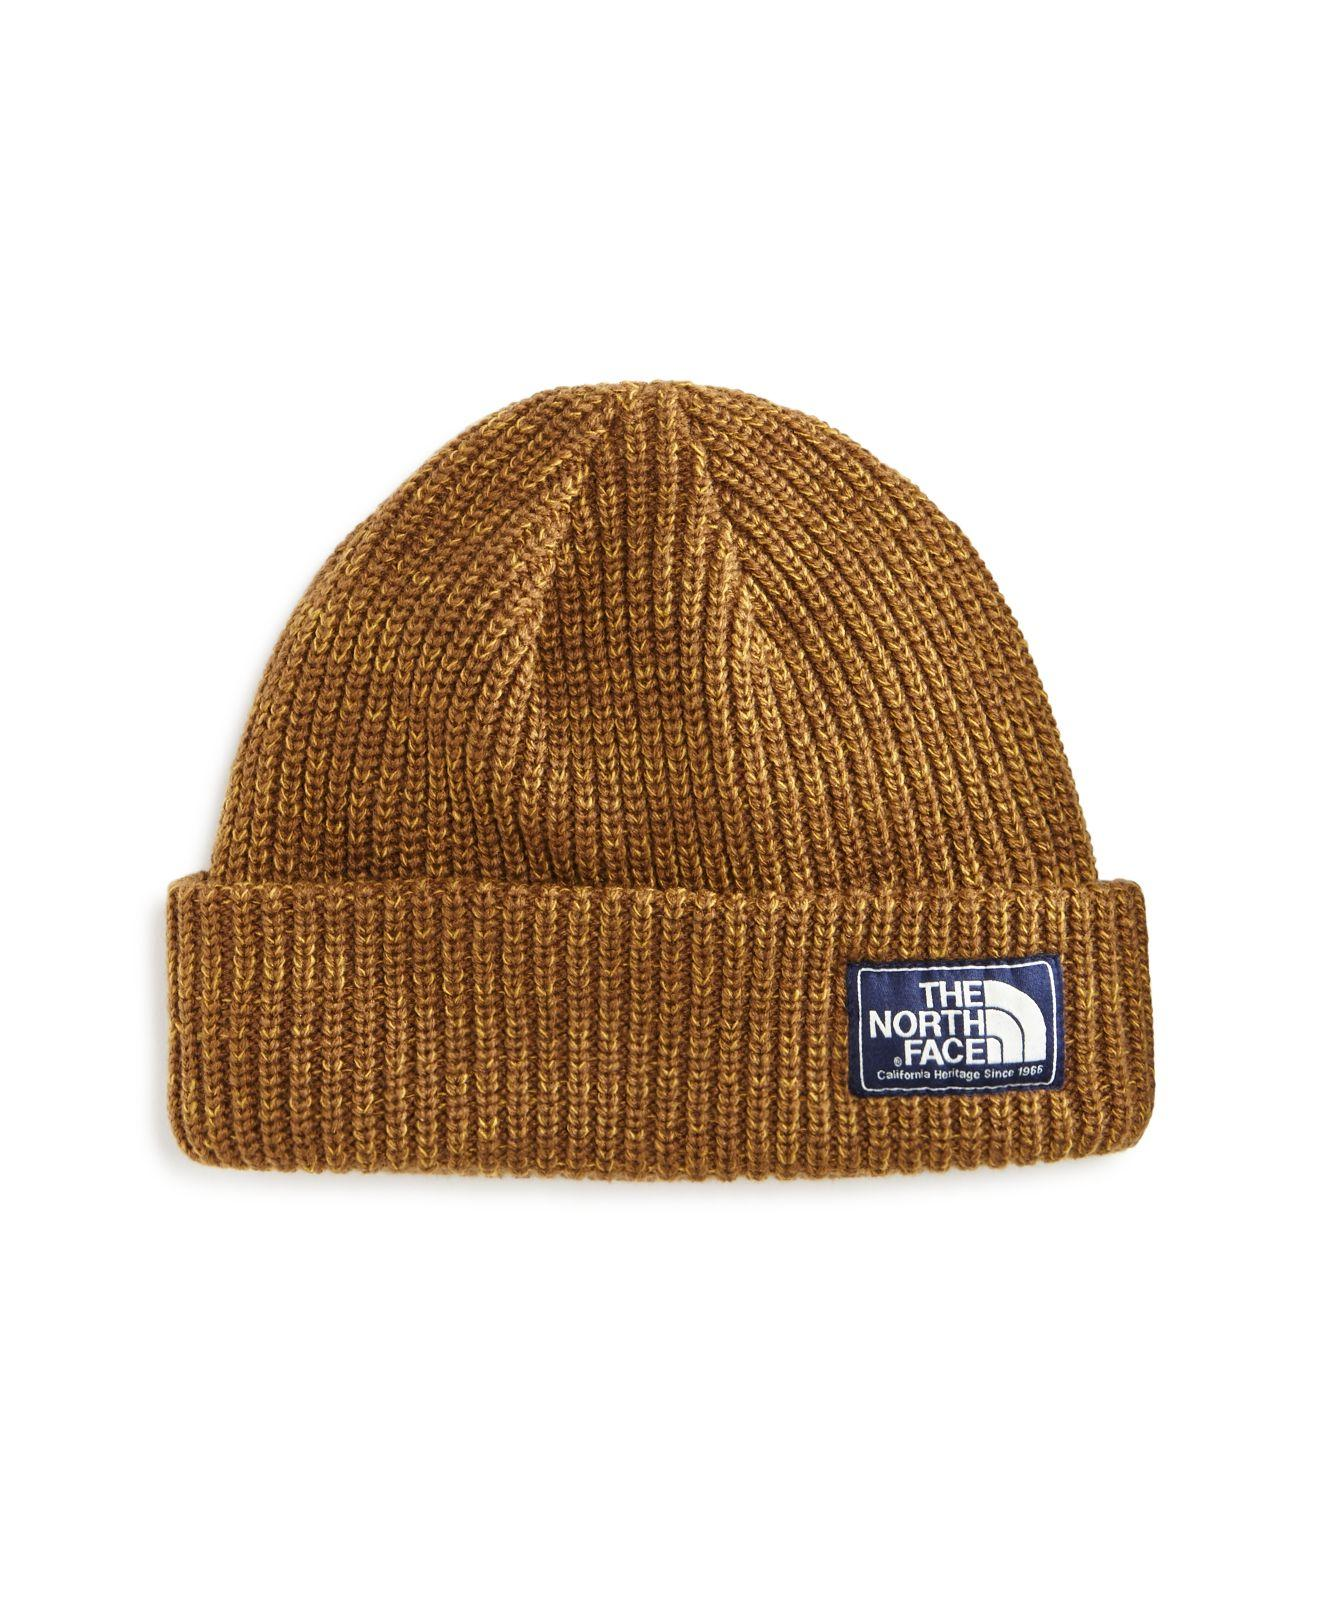 Lyst - The North Face Salty Dog Beanie in Brown for Men e5a1a7be938